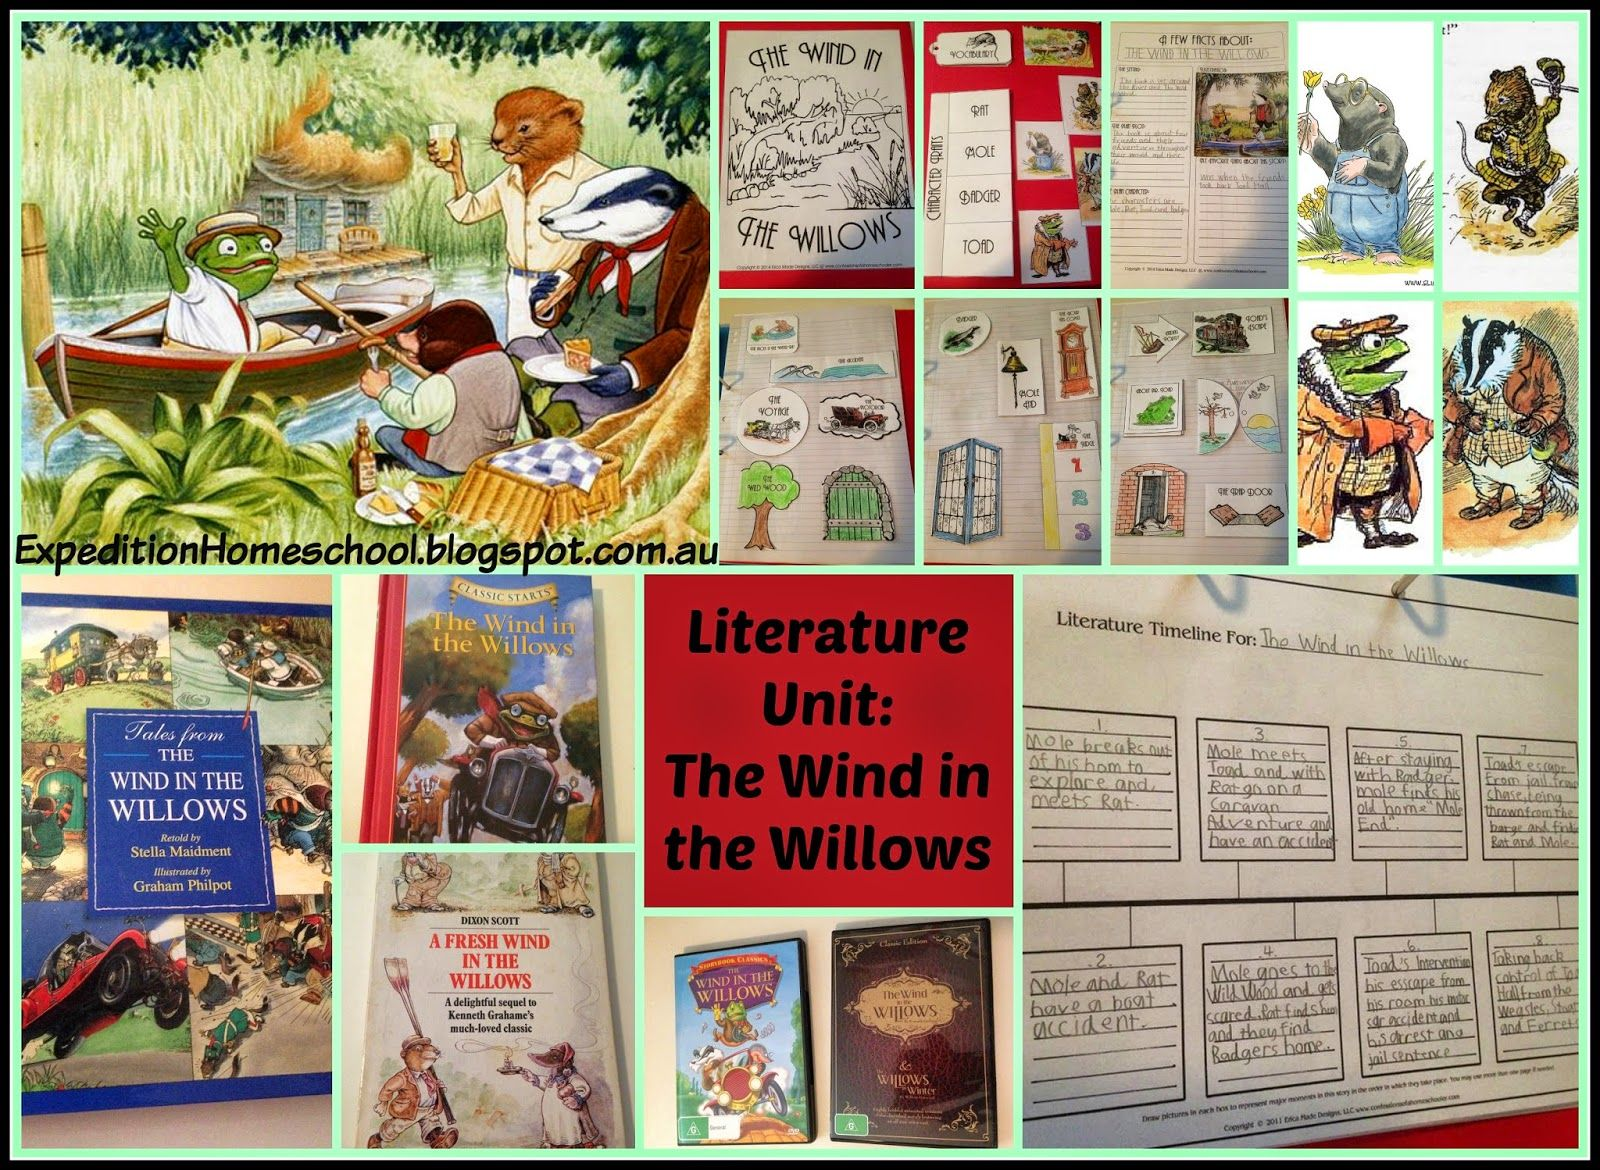 Expedition homeschool review the wind in the willows